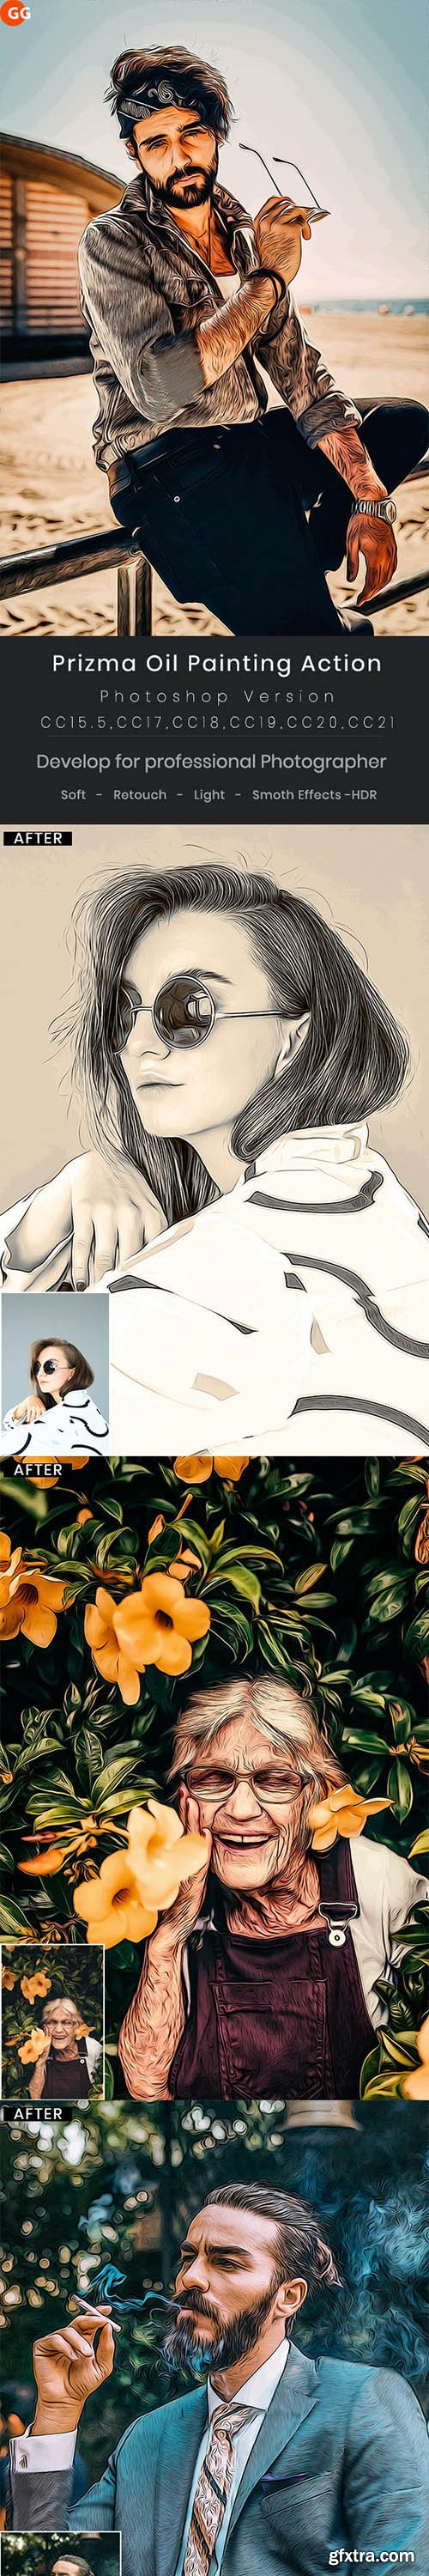 GraphicRiver - Prizma Oil Painting Action 29400819